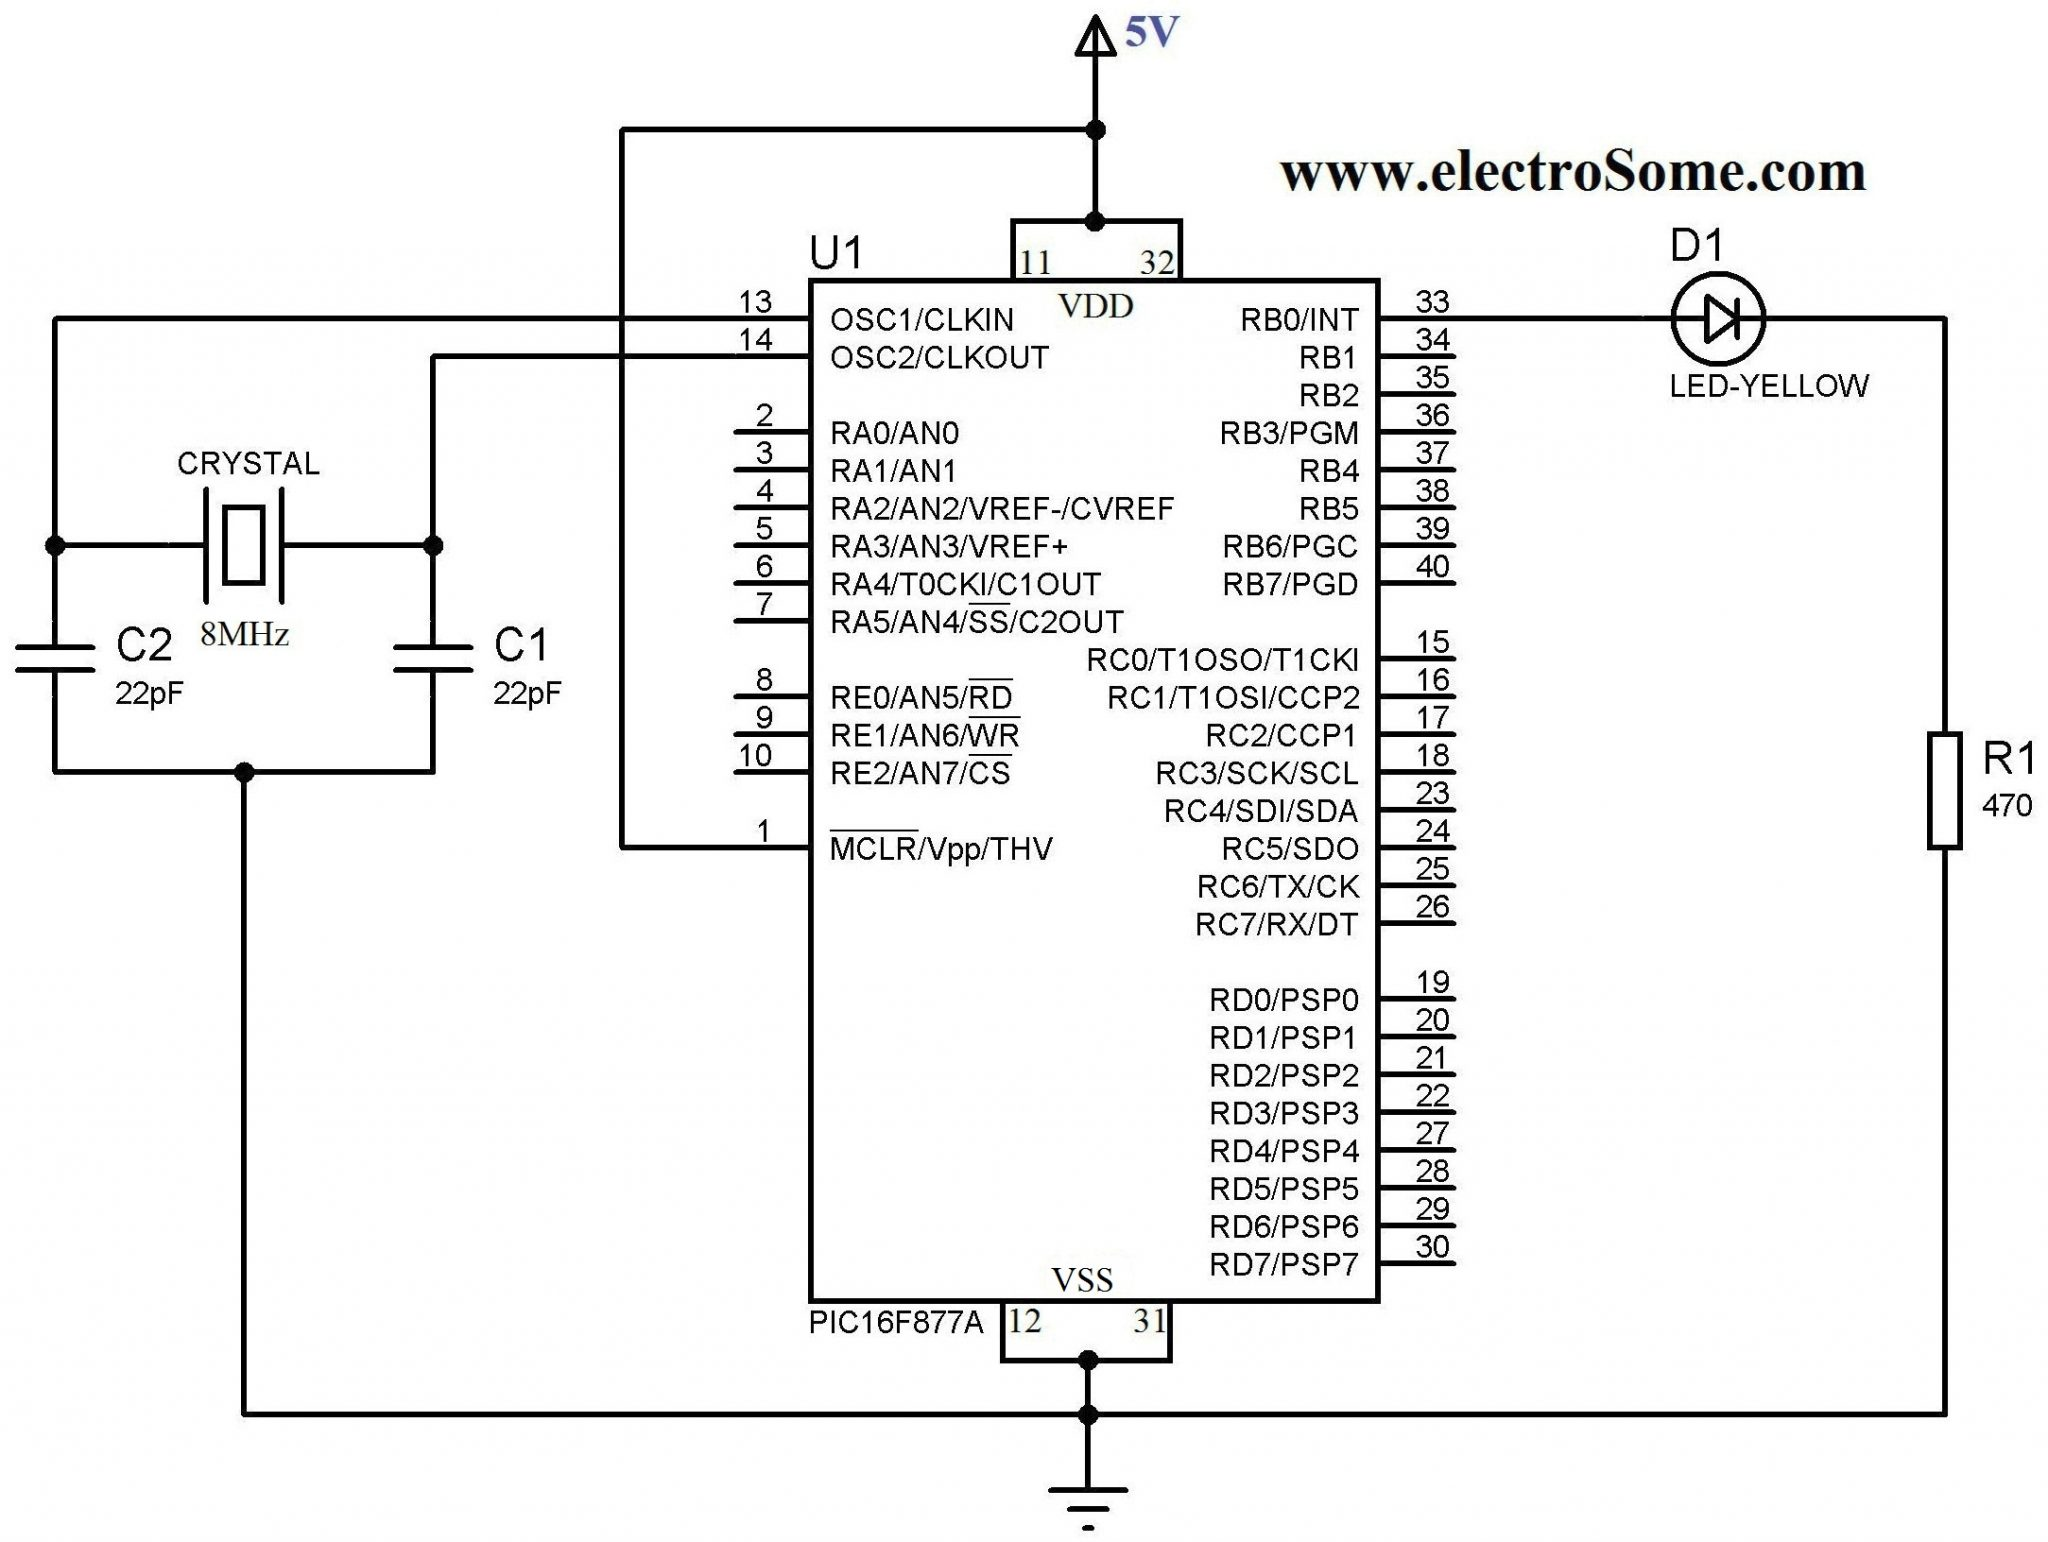 led wiring diagram 120v fluorescent tubes led blinking with pic microcontroller - mplab xc8 compiler blinking led ckt diagram